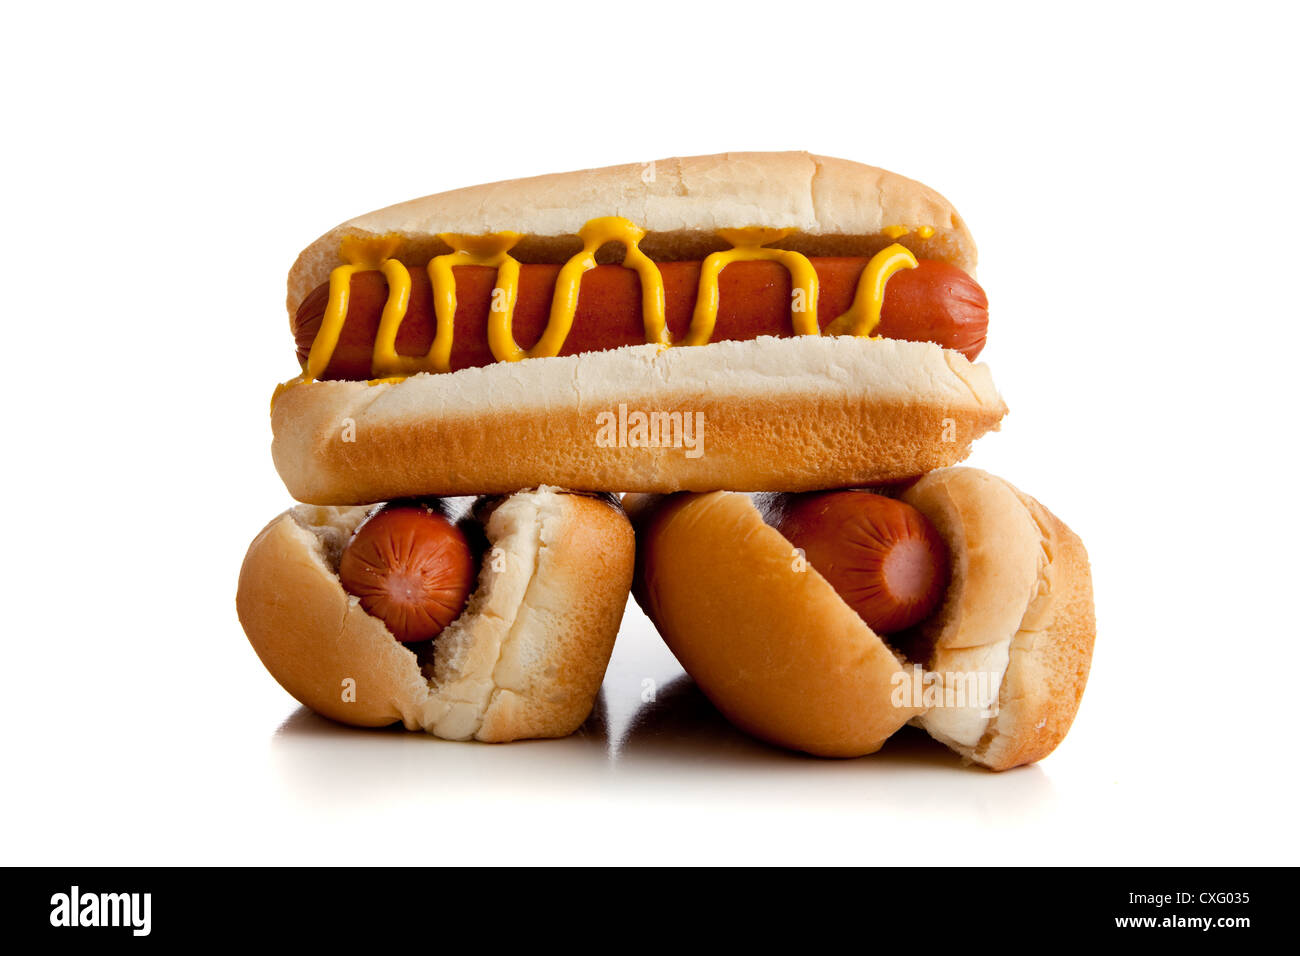 stack of three hot dogs with mustard - Stock Image